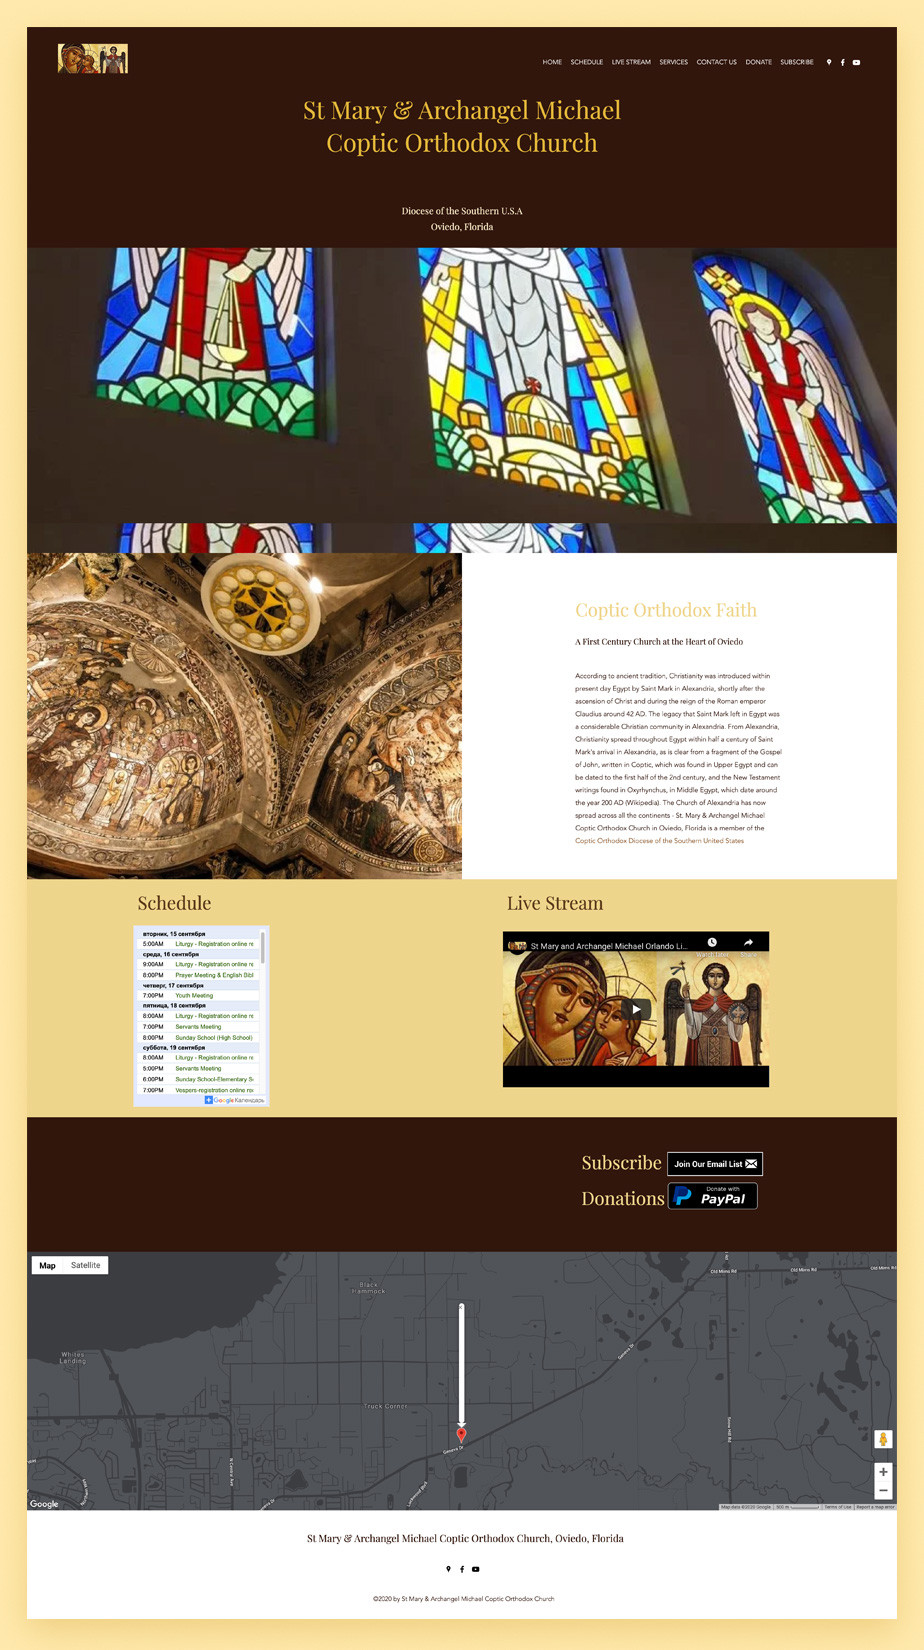 Best church websites example by St. Mary and Archangel Michael Coptic Orthodox Church